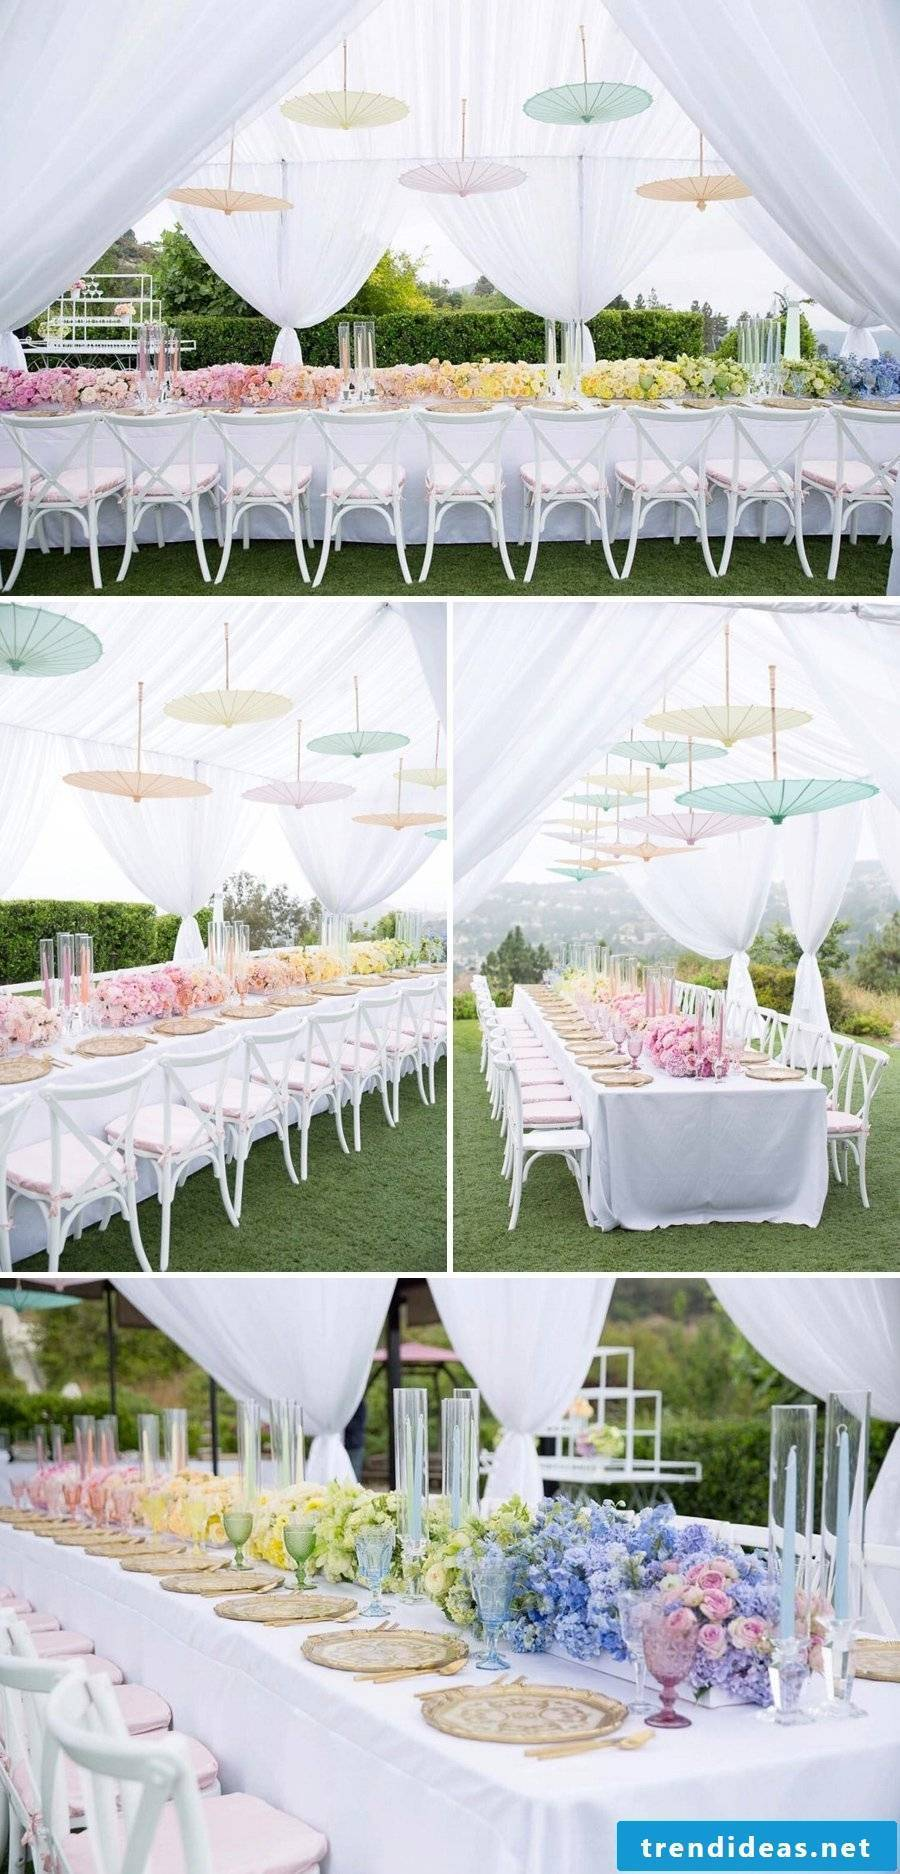 An ombre effect in pastel colors - a creative and beautiful idea for your wedding day decoration